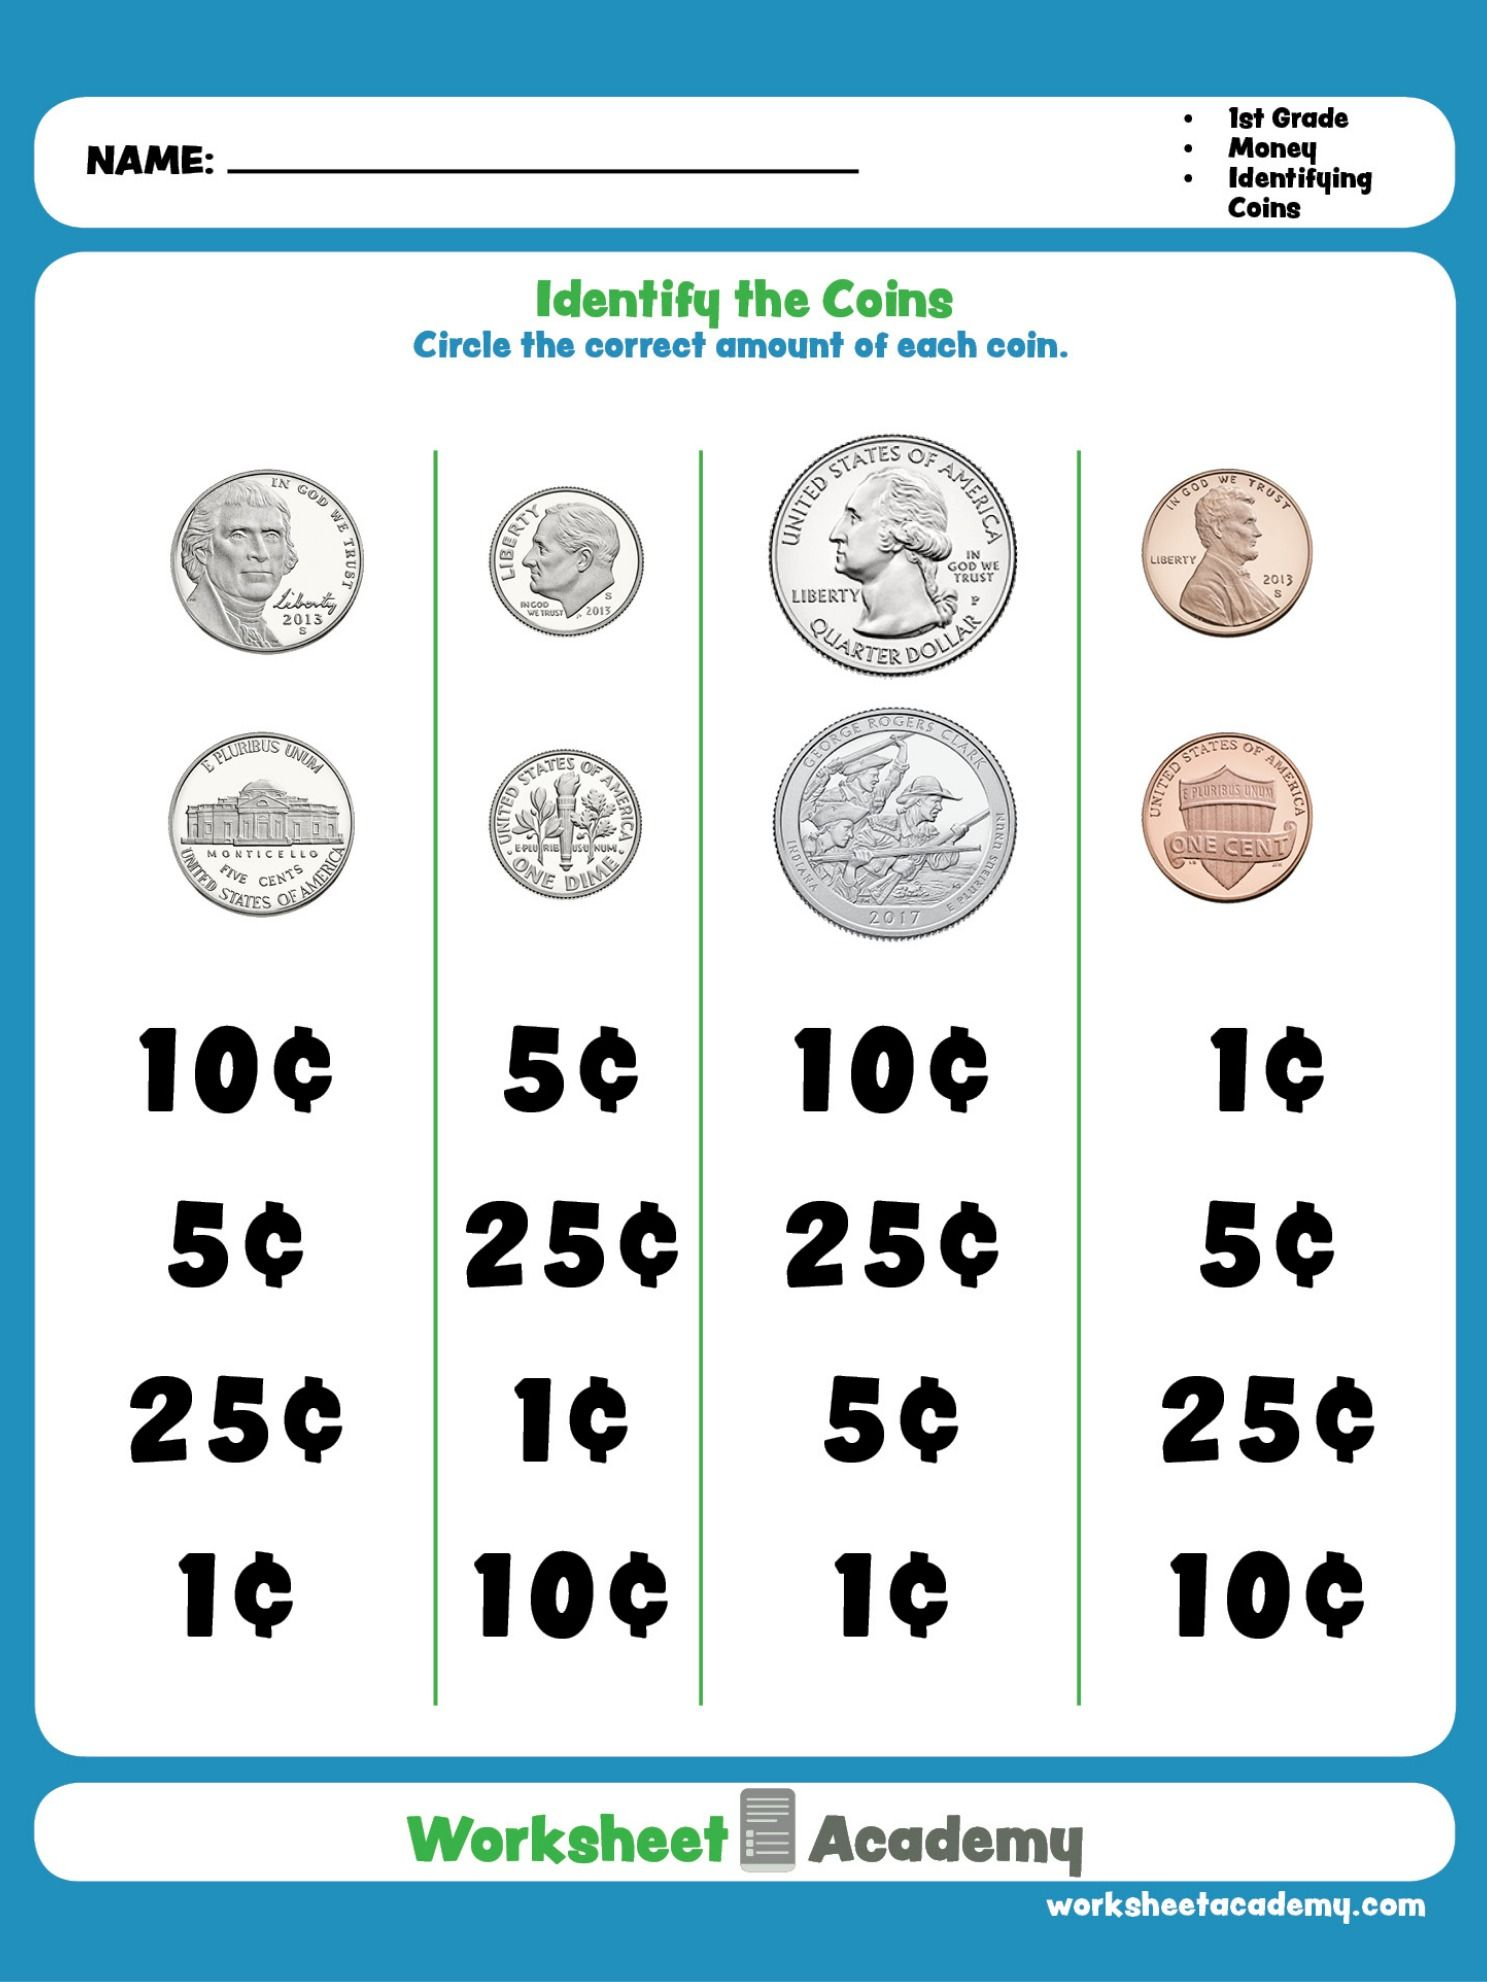 Practice Recognizing Coins This Education Worksheet Is